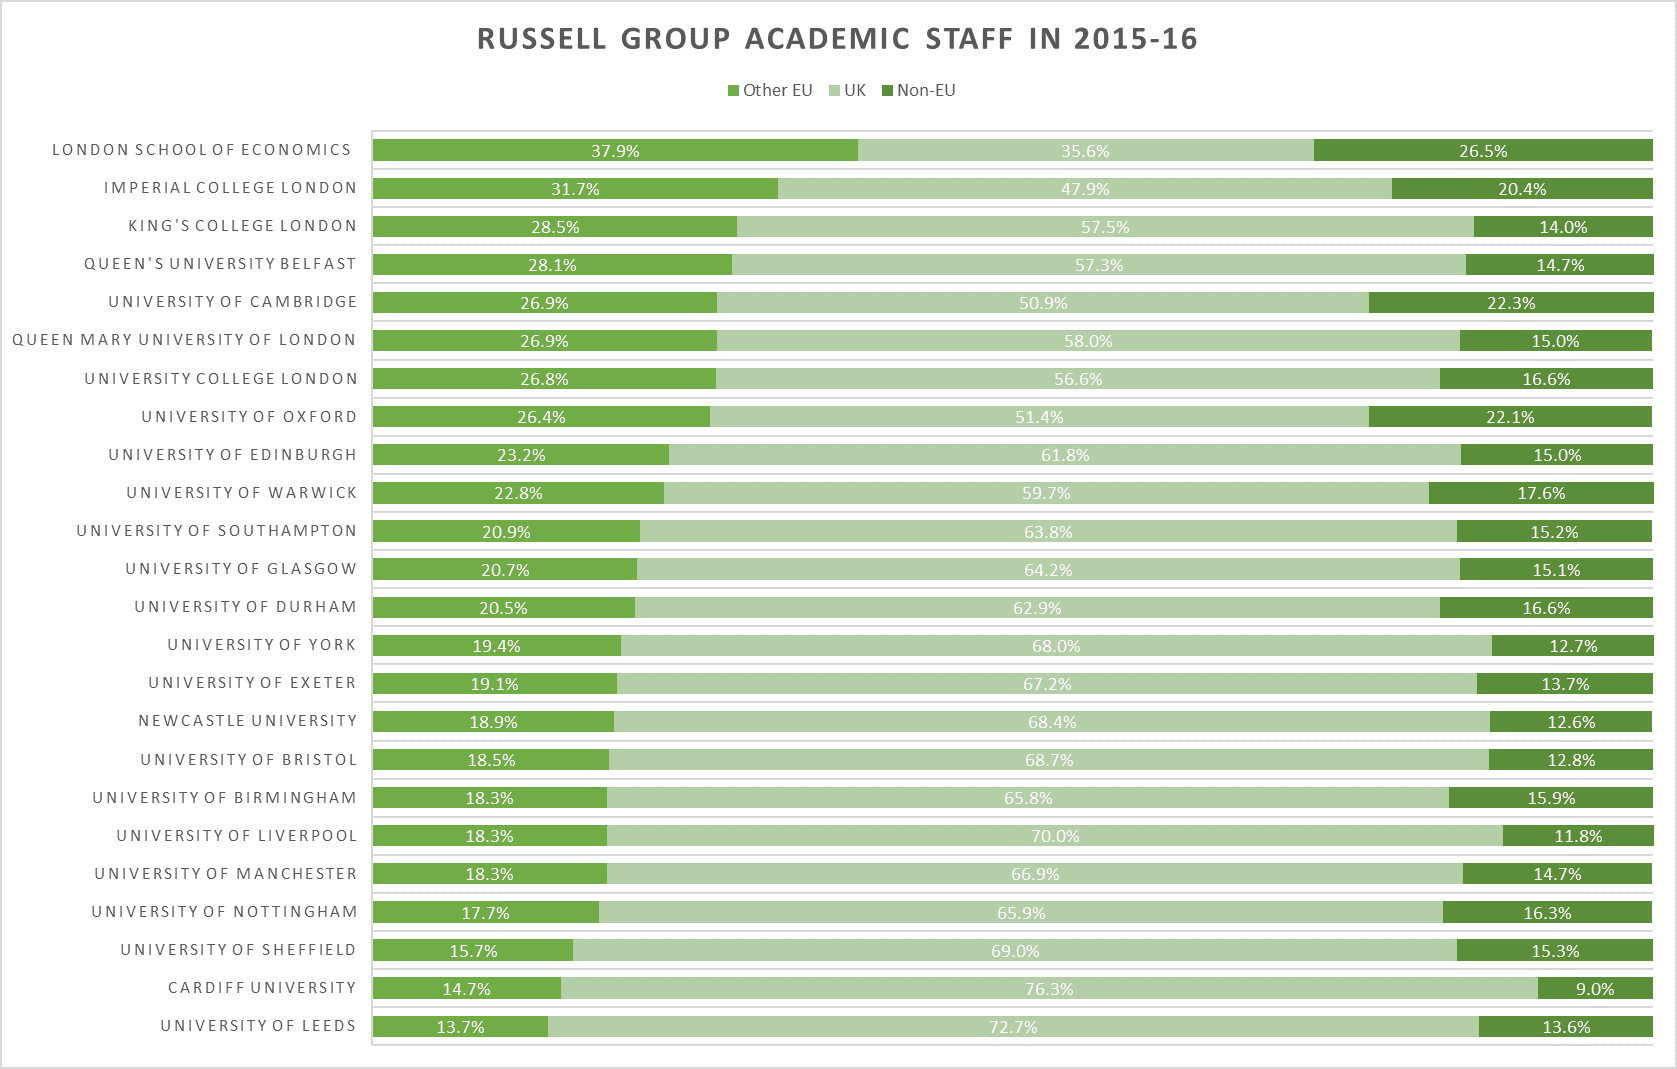 Russell Group academic staff in 2015-16